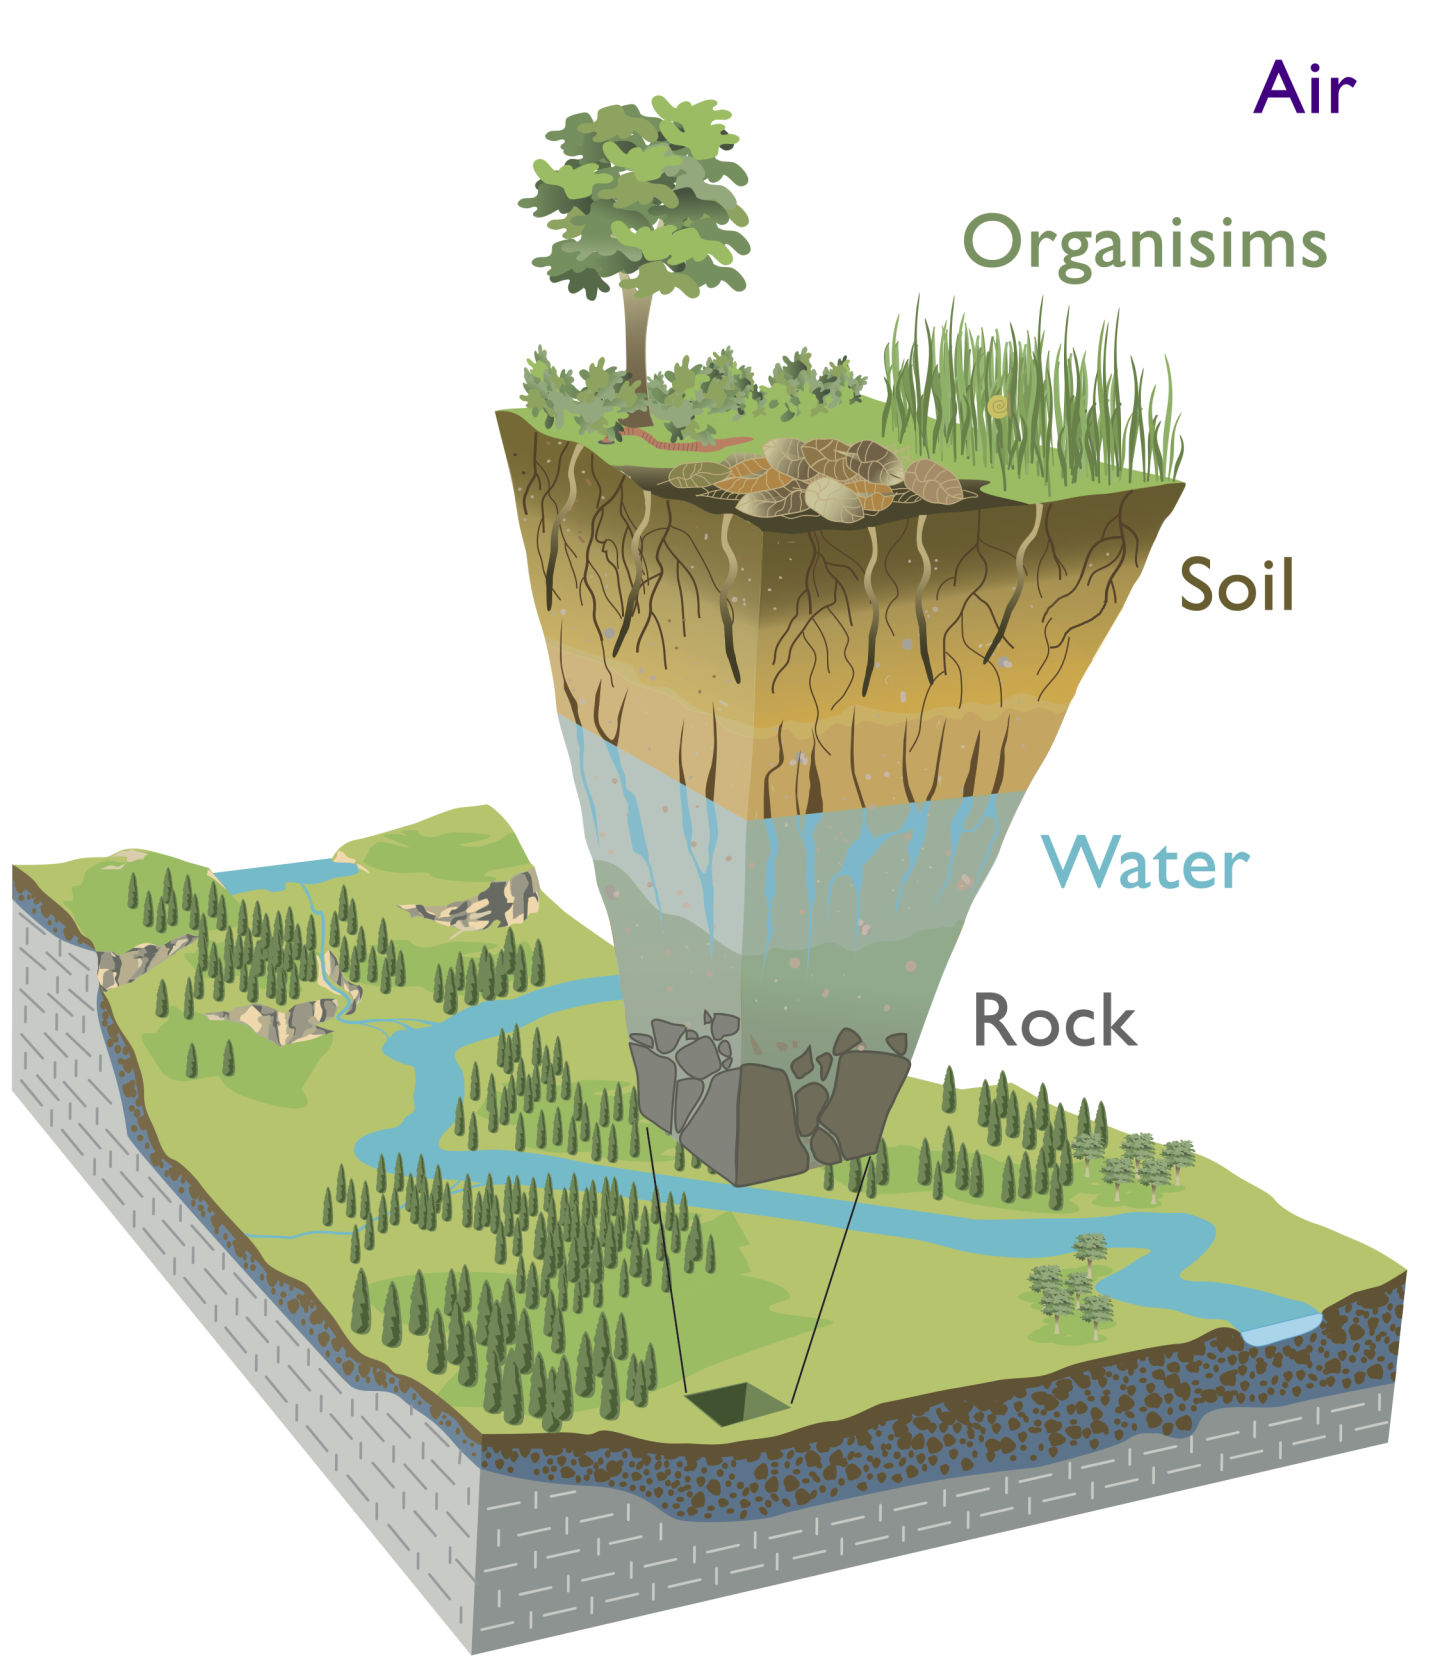 The critical zone is defined as the zone that is tectonically, geologically and biologically active across the Earth's surface.